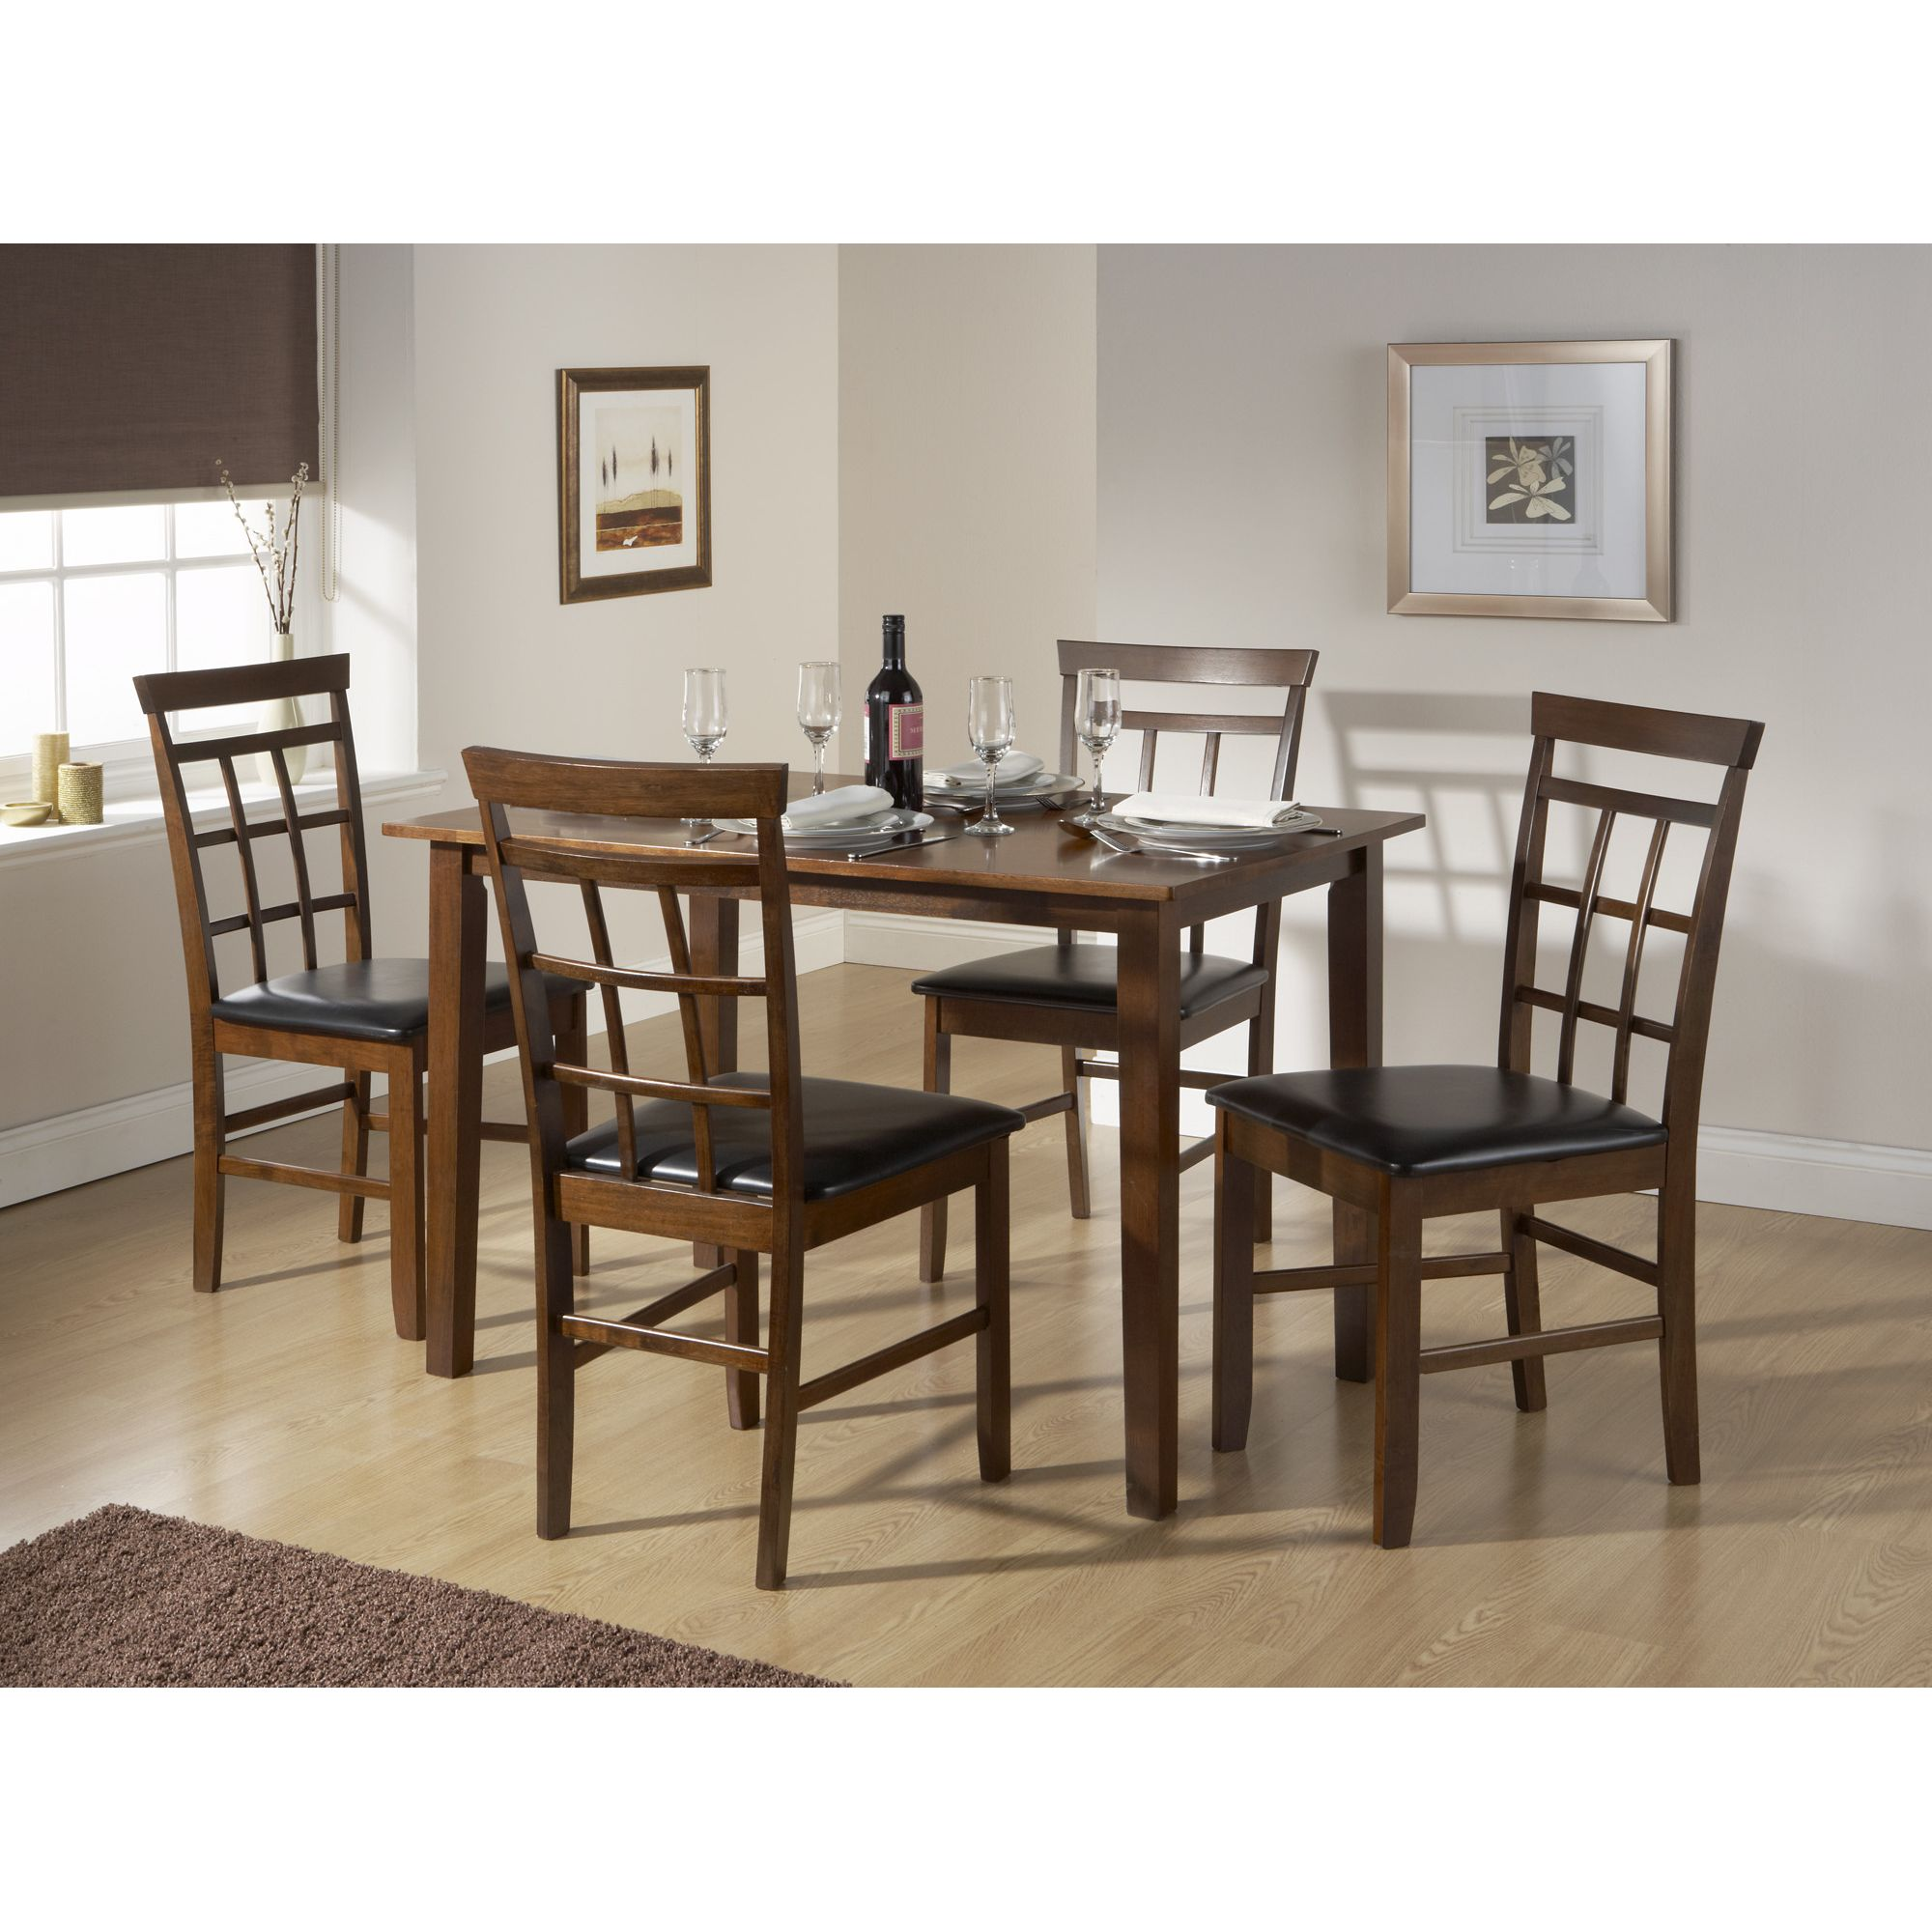 Elements Bude 5 Piece Dining Set - Walnut at Tesco Direct